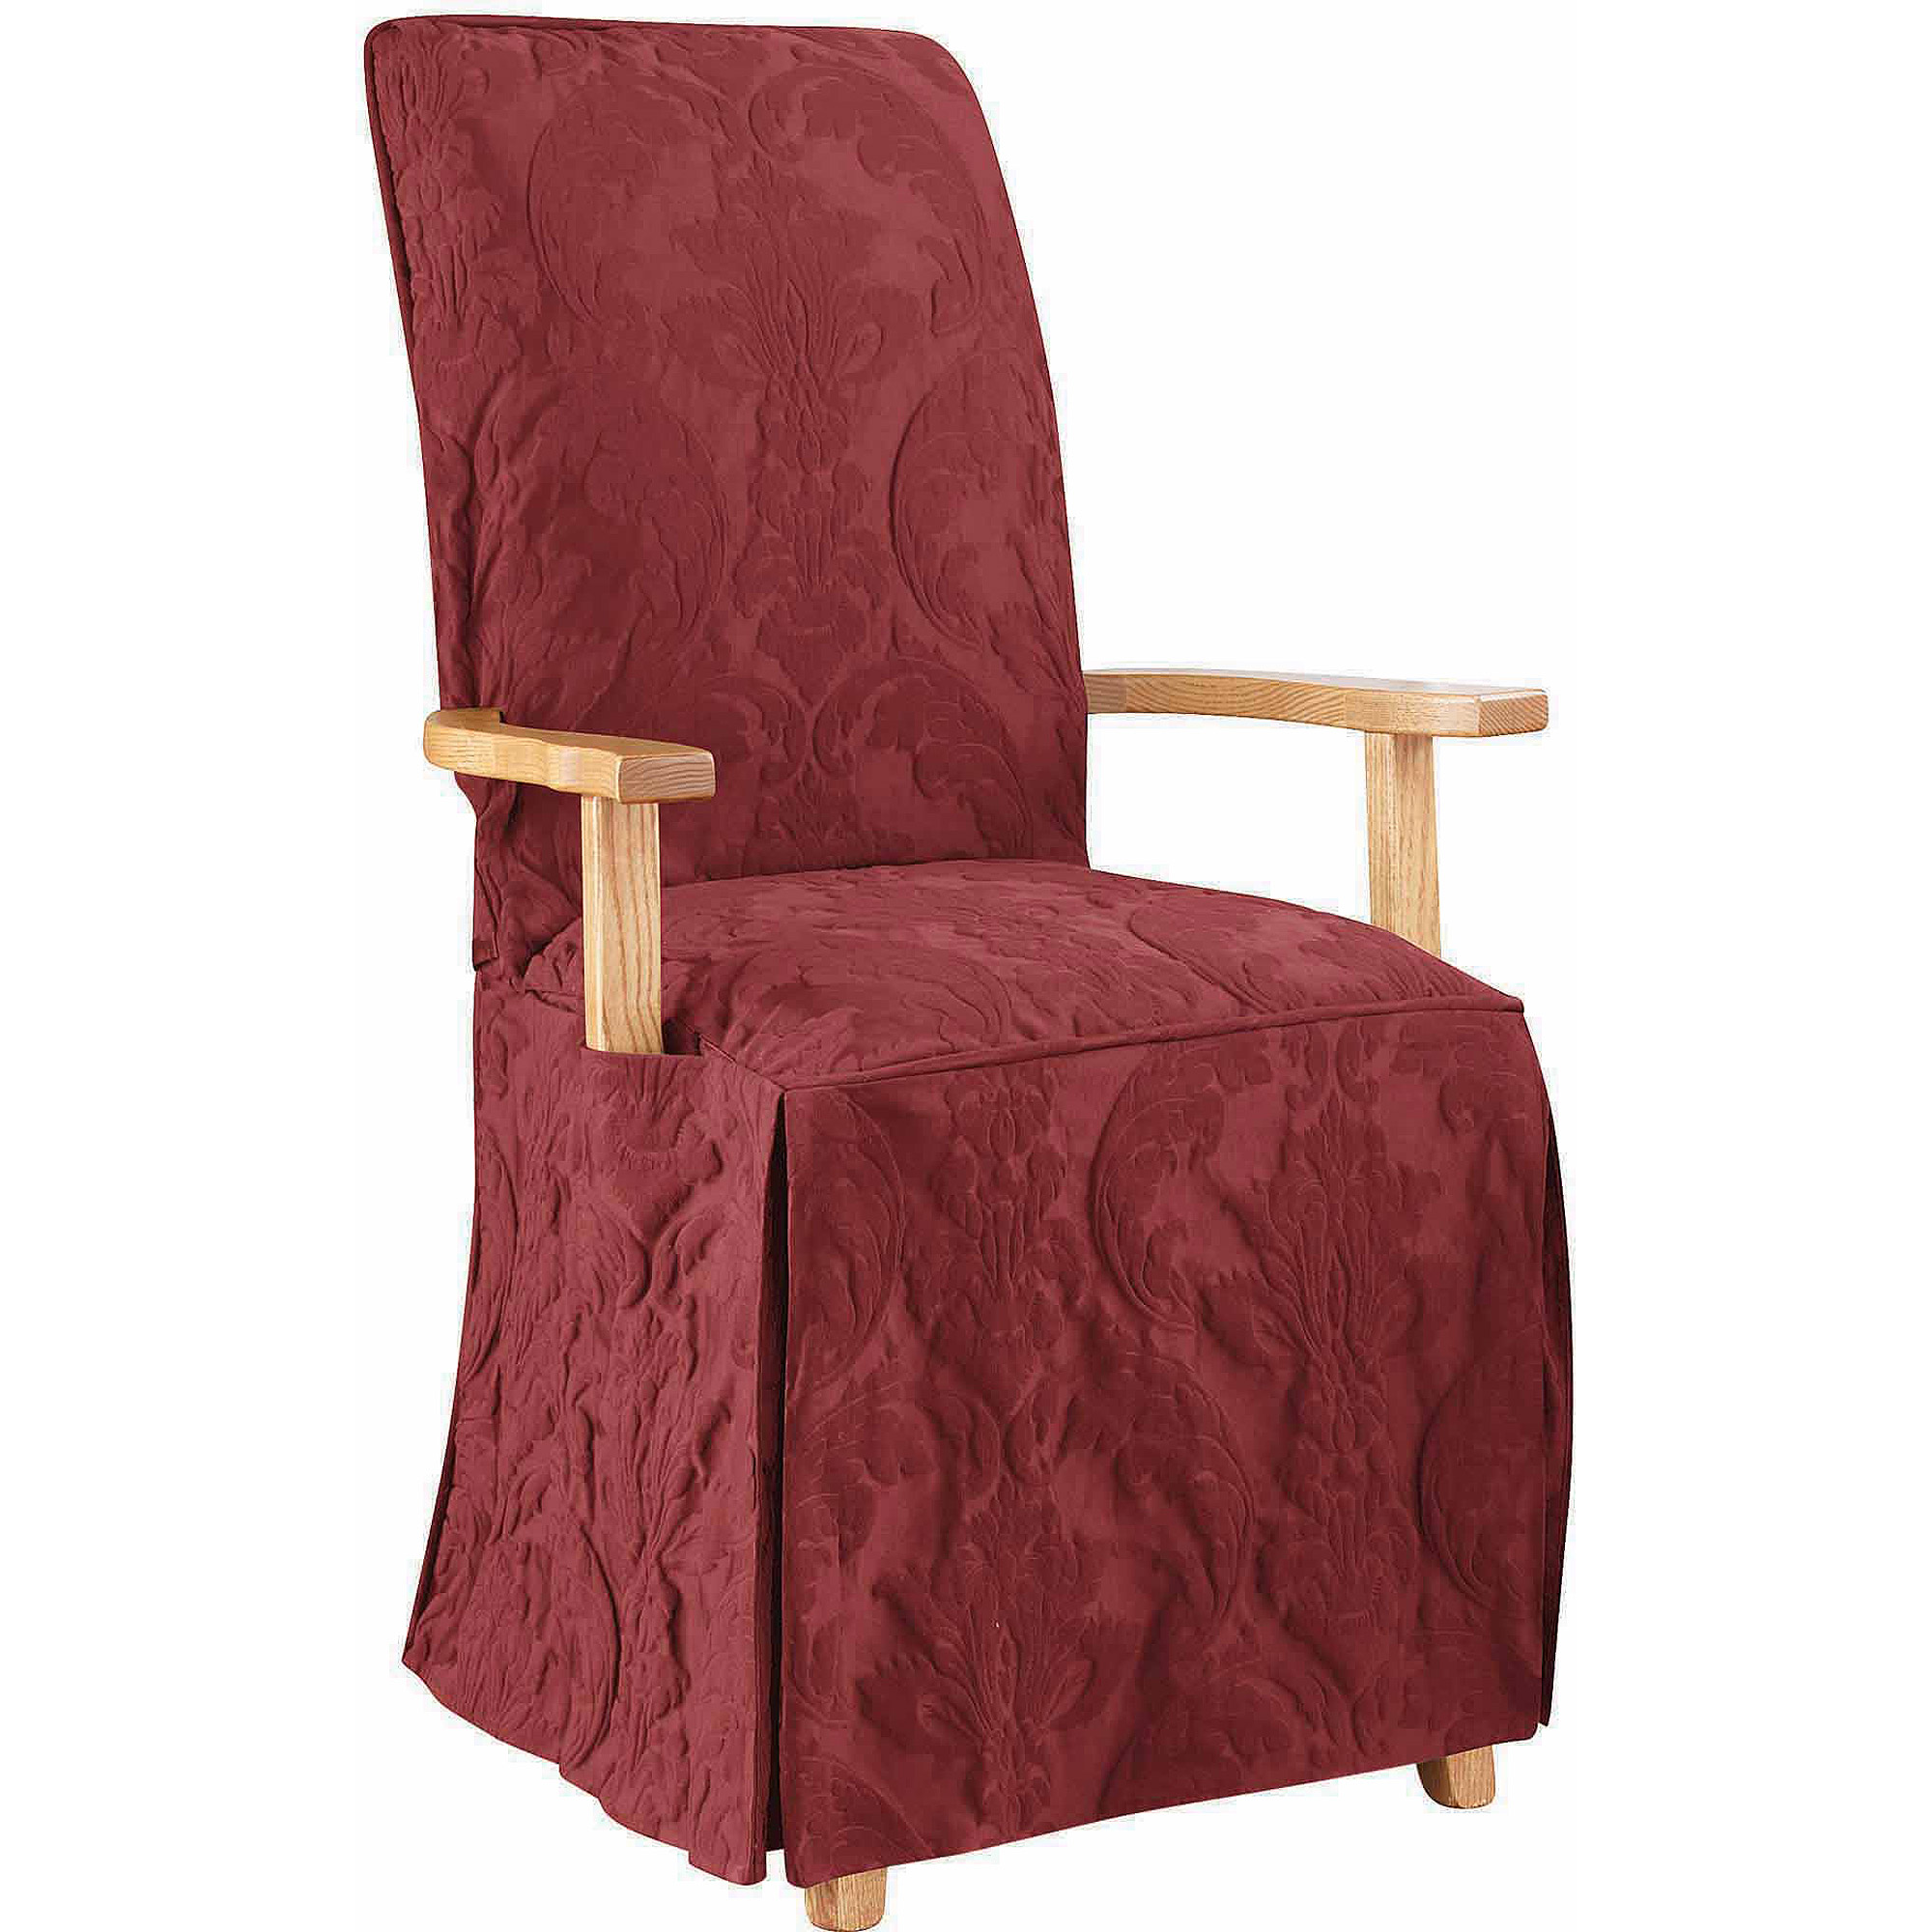 slipcover intended slipcovers sizing design chair arms covers x dining for gallery room with